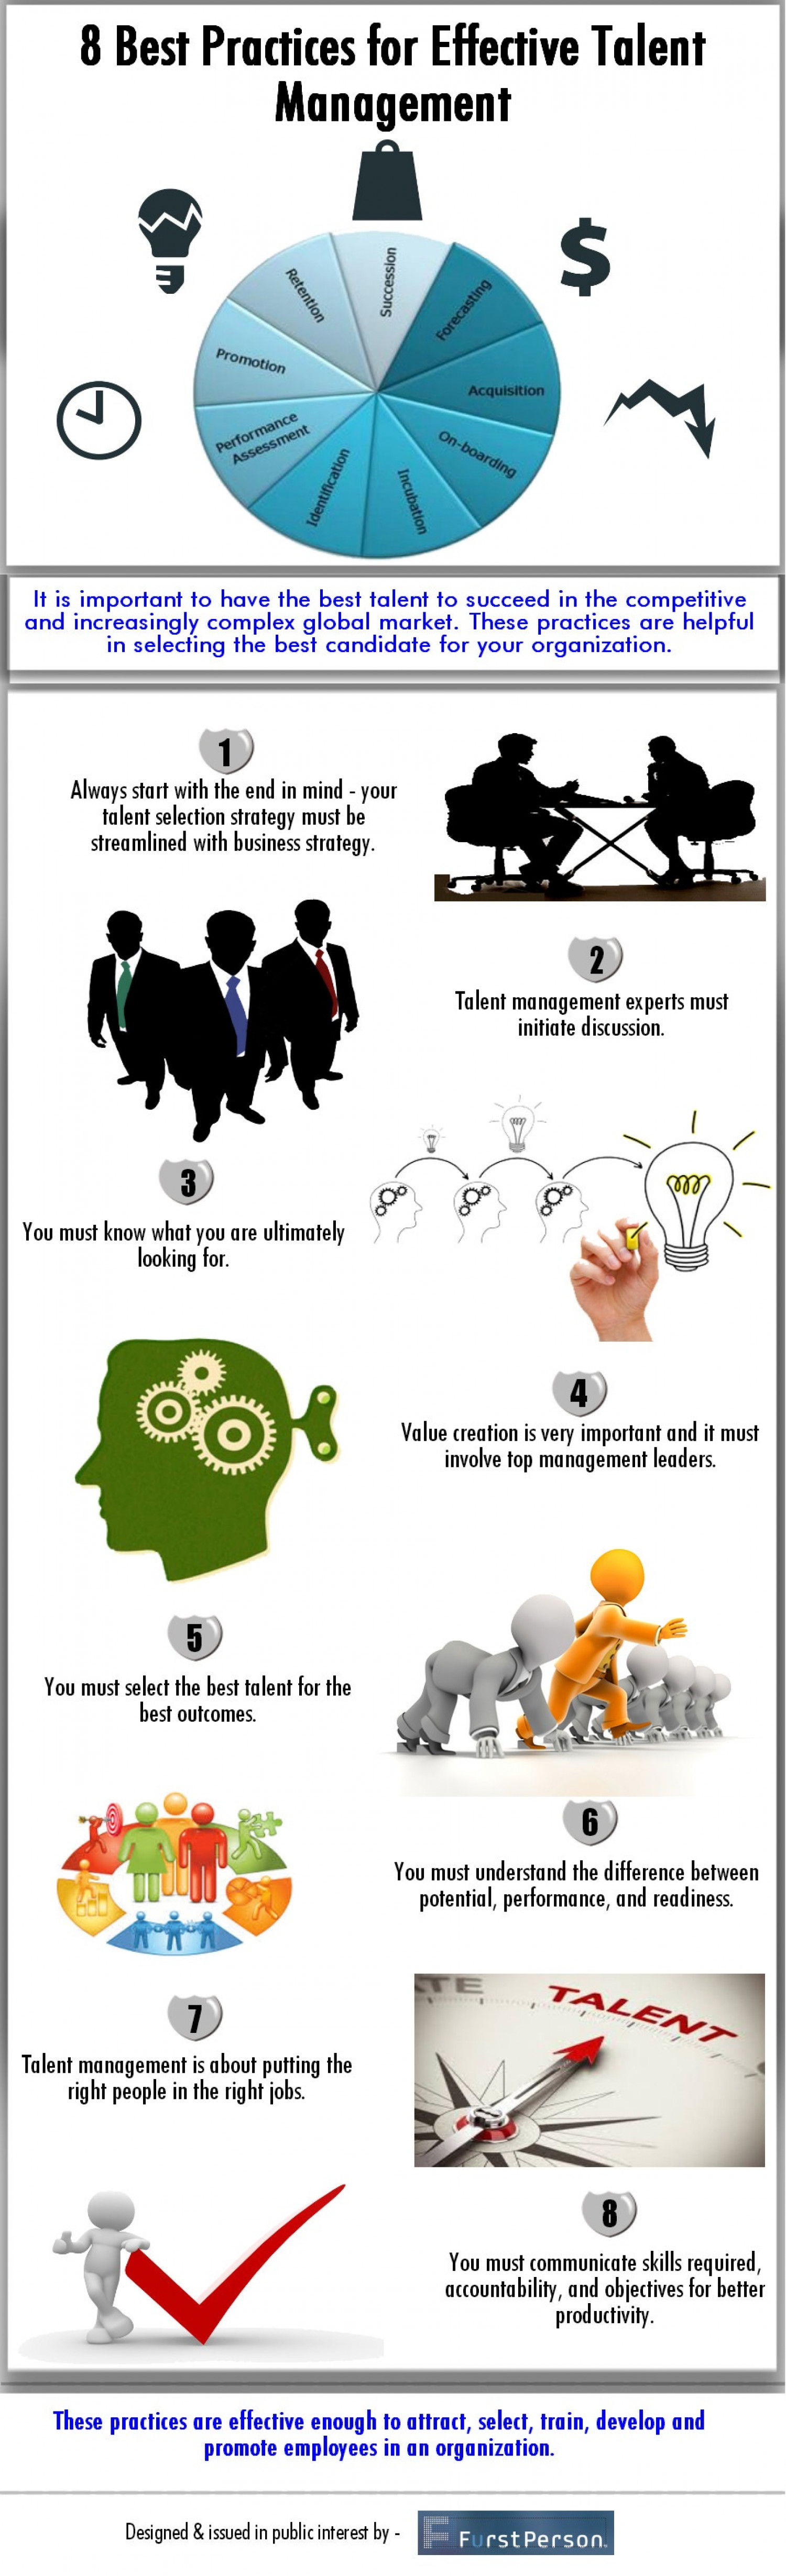 8 Best Practices for Effective Talent Management Infographic